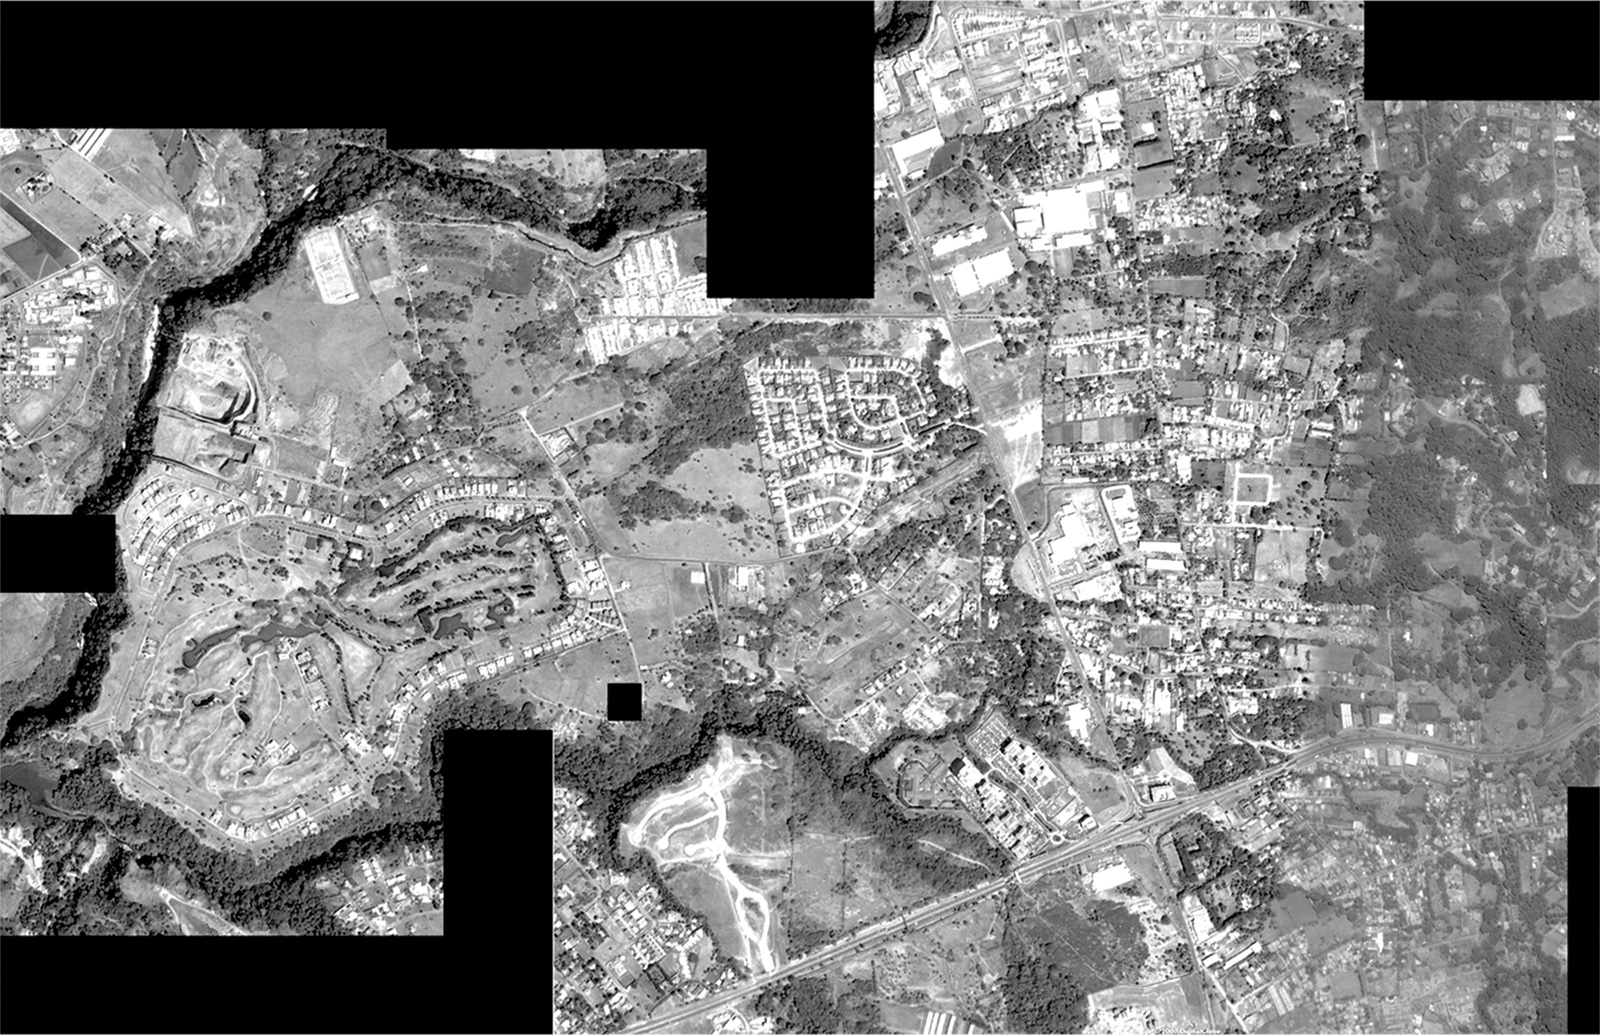 2010. The composite satellite image shows the district of Pozos de Santa Ana, one of 188 districts located within the 31 municipalities that constitute the GAM. The extremely detailed political subdivision is one of the reasons for an overall spatially fragmented and socially segregated development. The historic village of Pozos, situated at the highway intersection on the lower right side of the image, remains as a fragment amongst many. Composite image: Oliver Schütte based on Google Earth, courtesy of A-01. [Courtesy of www.A-01.net and Google Earth]